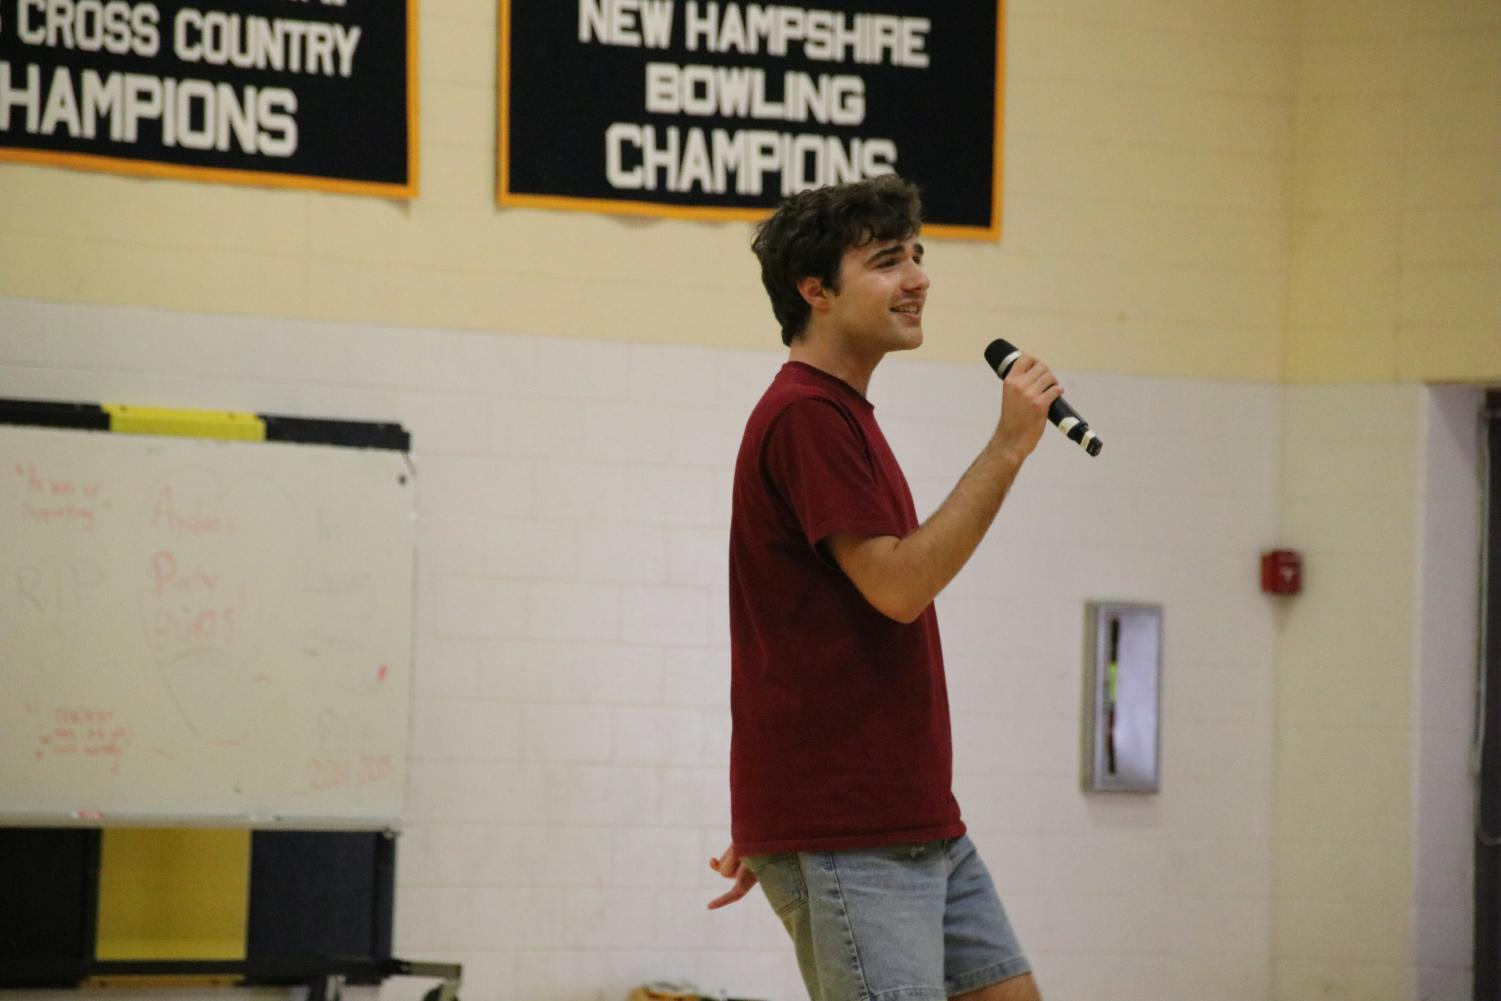 Christos+Nassiopoulos+decided+to+share+his+talent+of+singing+to+the+school+on+the+Run+for+Hope+day.